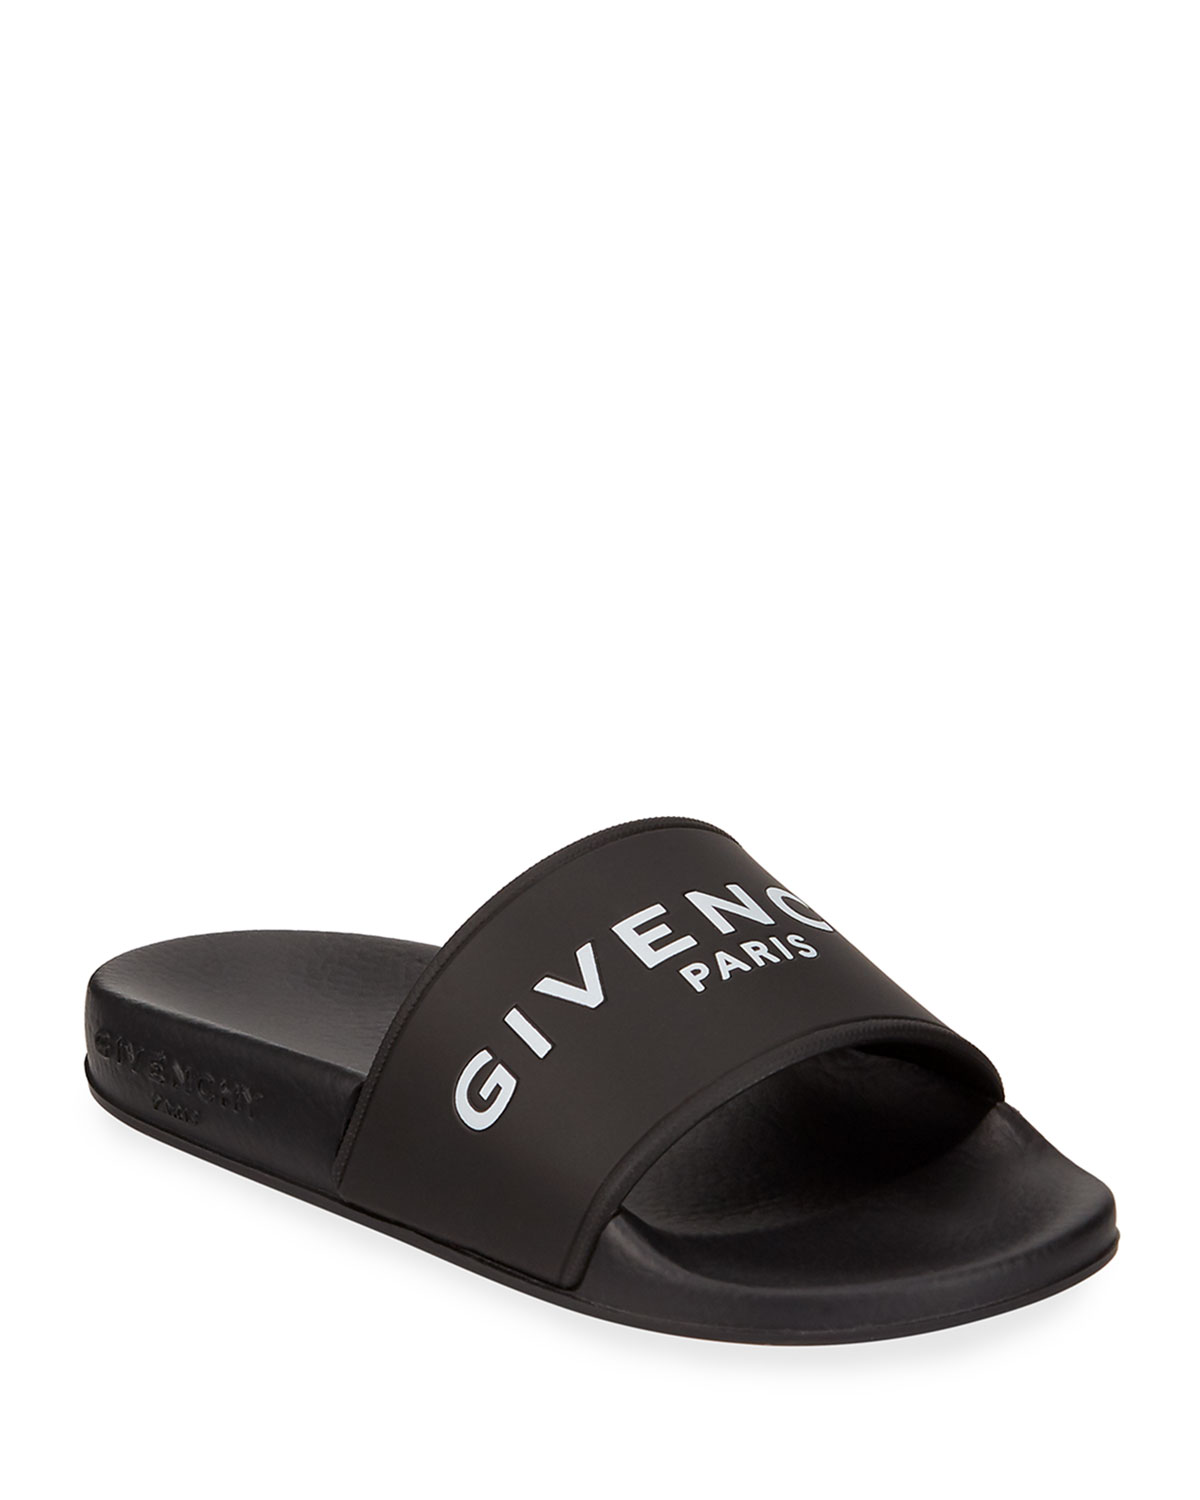 9f1b0091d920 Givenchy girls logo pool slide sandals toddler neiman marcus jpg 1200x1500 Givenchy  slide sandals